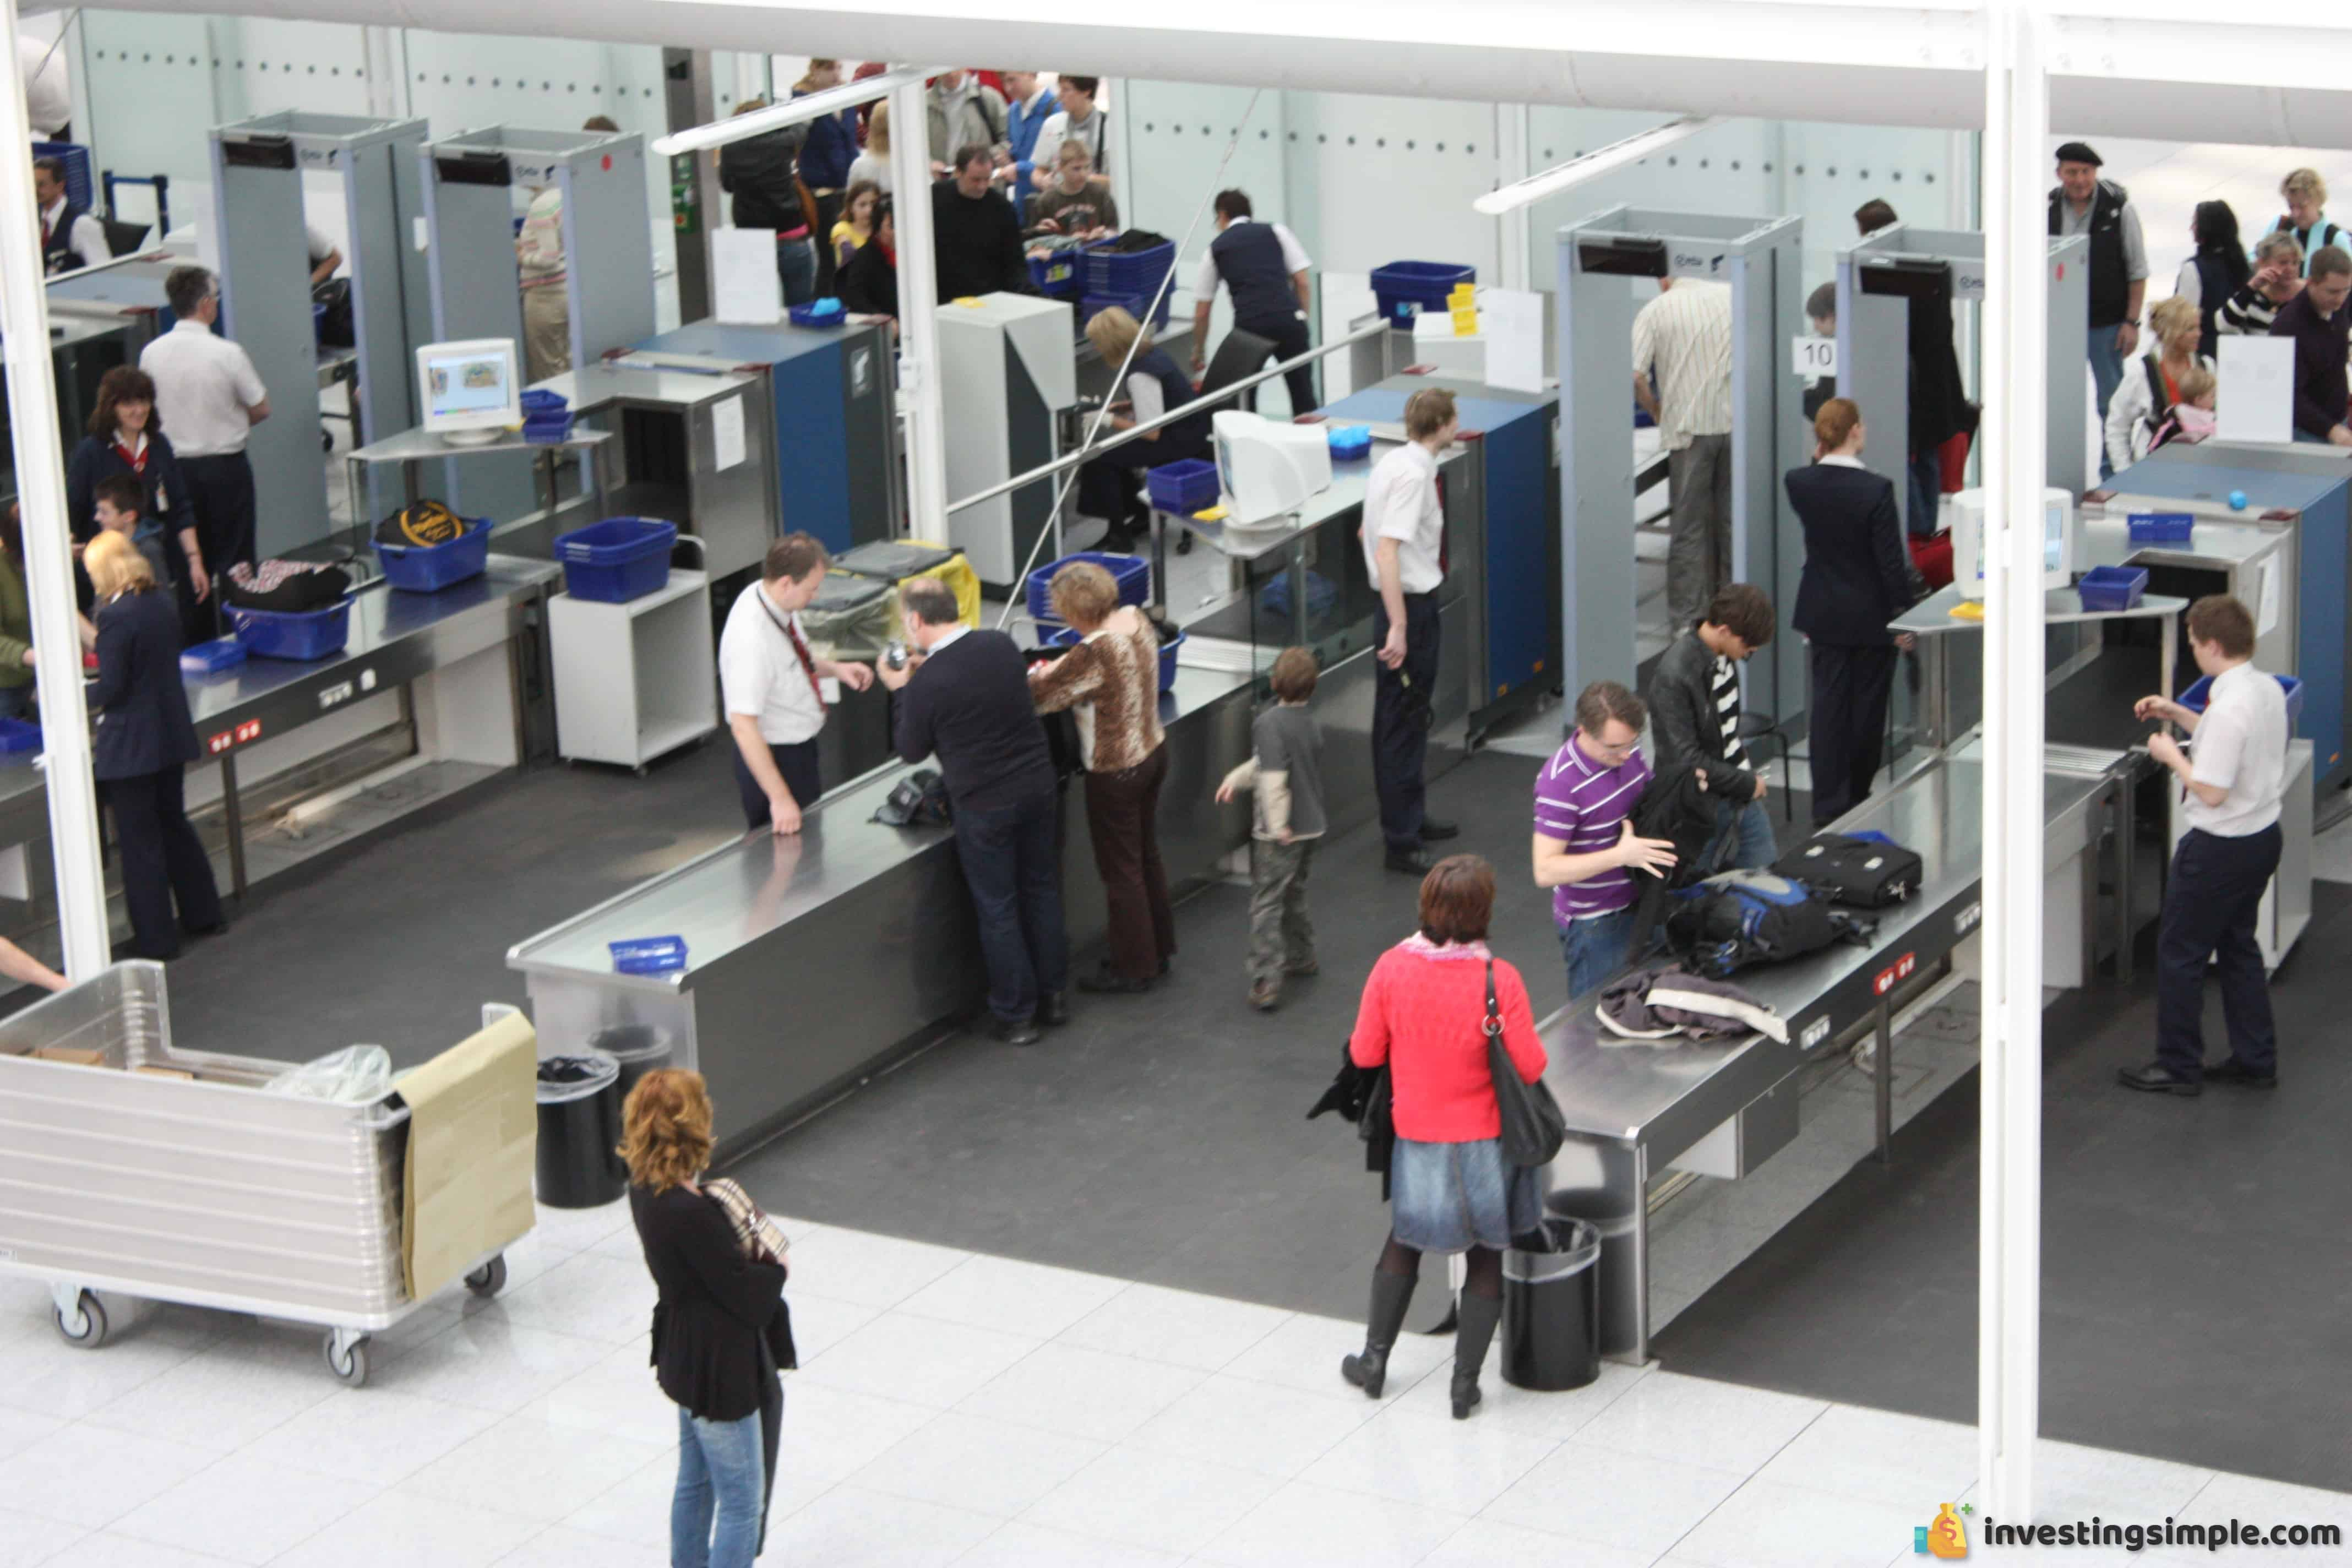 The TSA can be a great high paying job that does not require a college education.